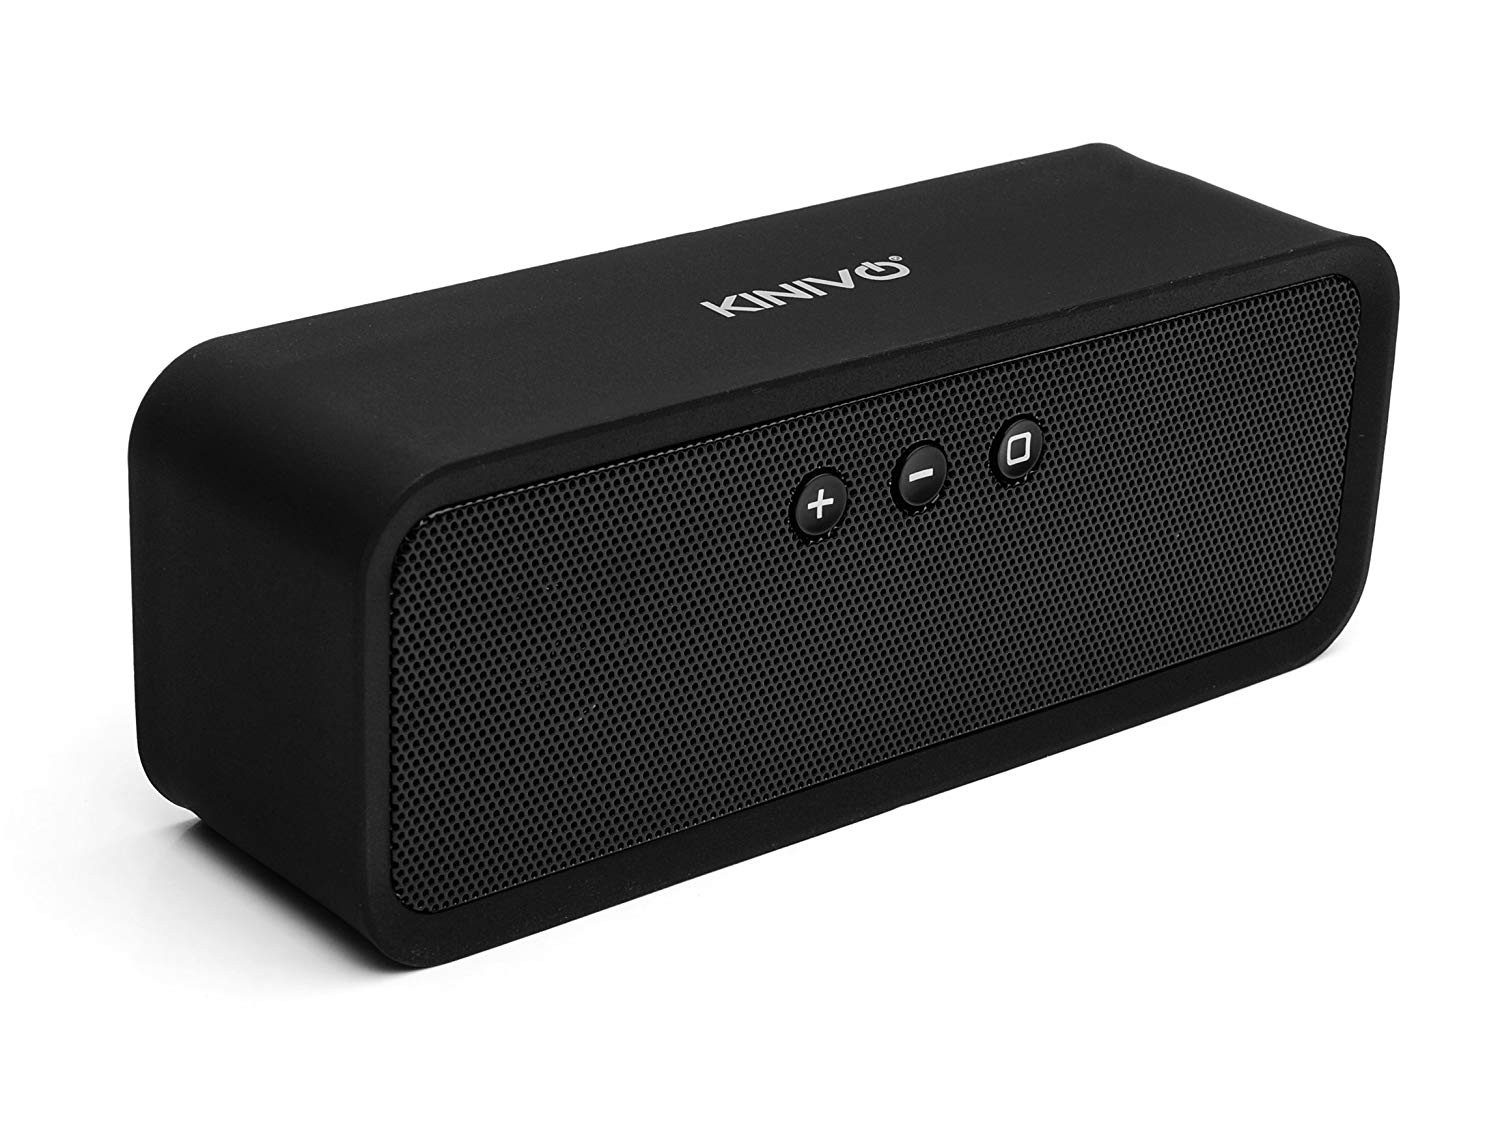 Kinivo Wireless Bluetooth Portable Speaker - Supports apt-X for Digital Audio BTX270 (Black)